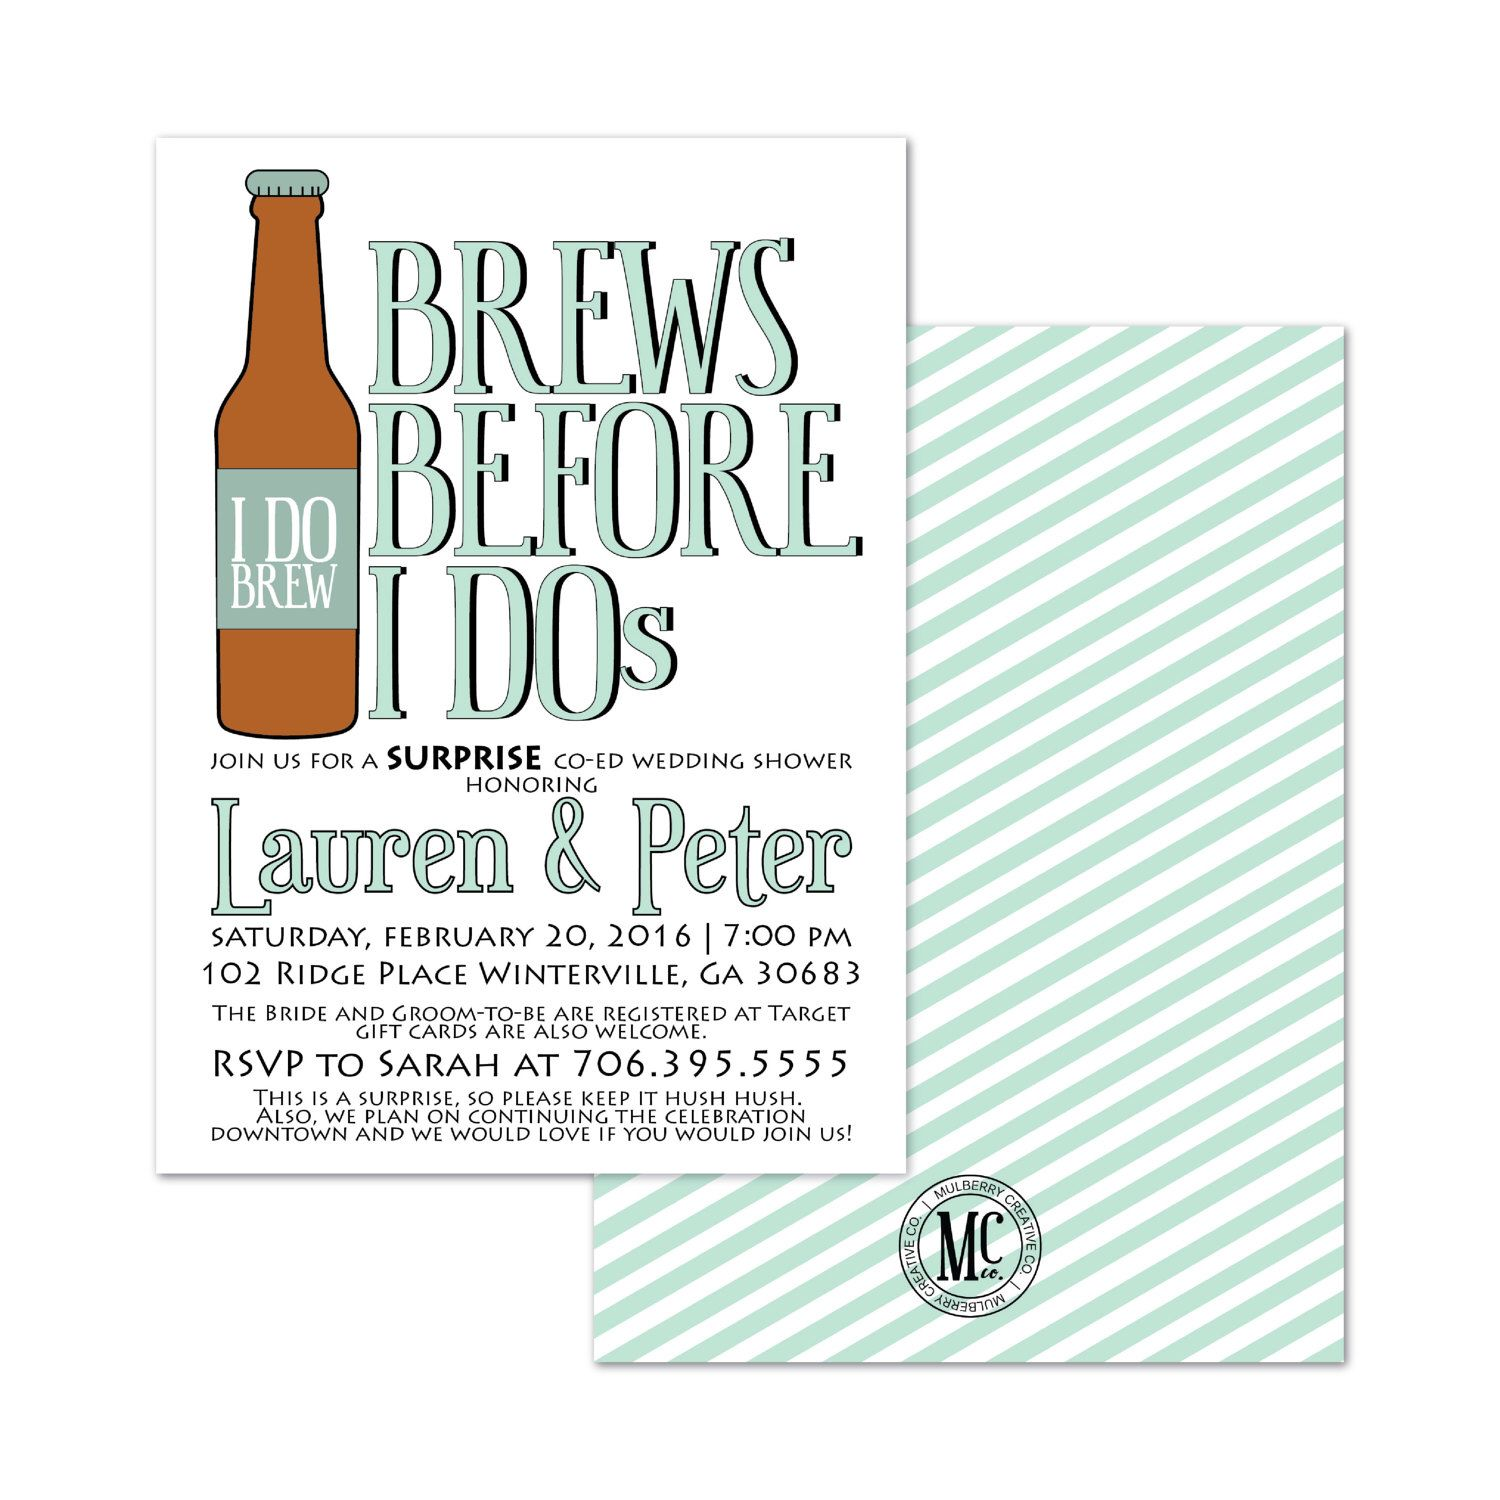 Brews Before I Dos Bridal Shower Invitation S Bride And Groom By